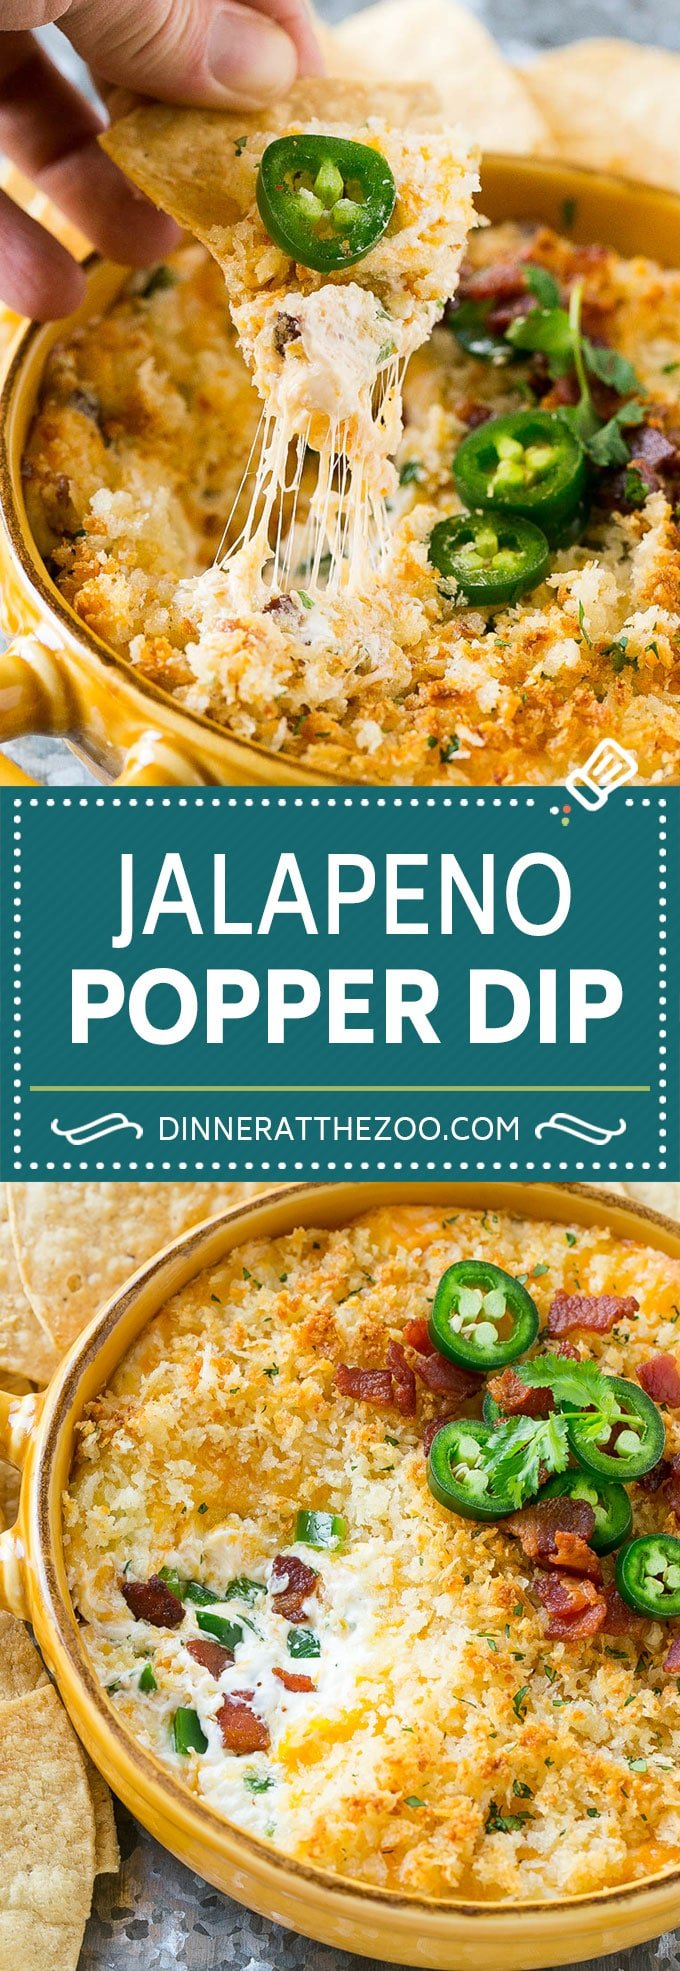 Jalapeno Popper Dip #jalapeno #dip #bacon #cheese #appetizer #dinneratthezoo